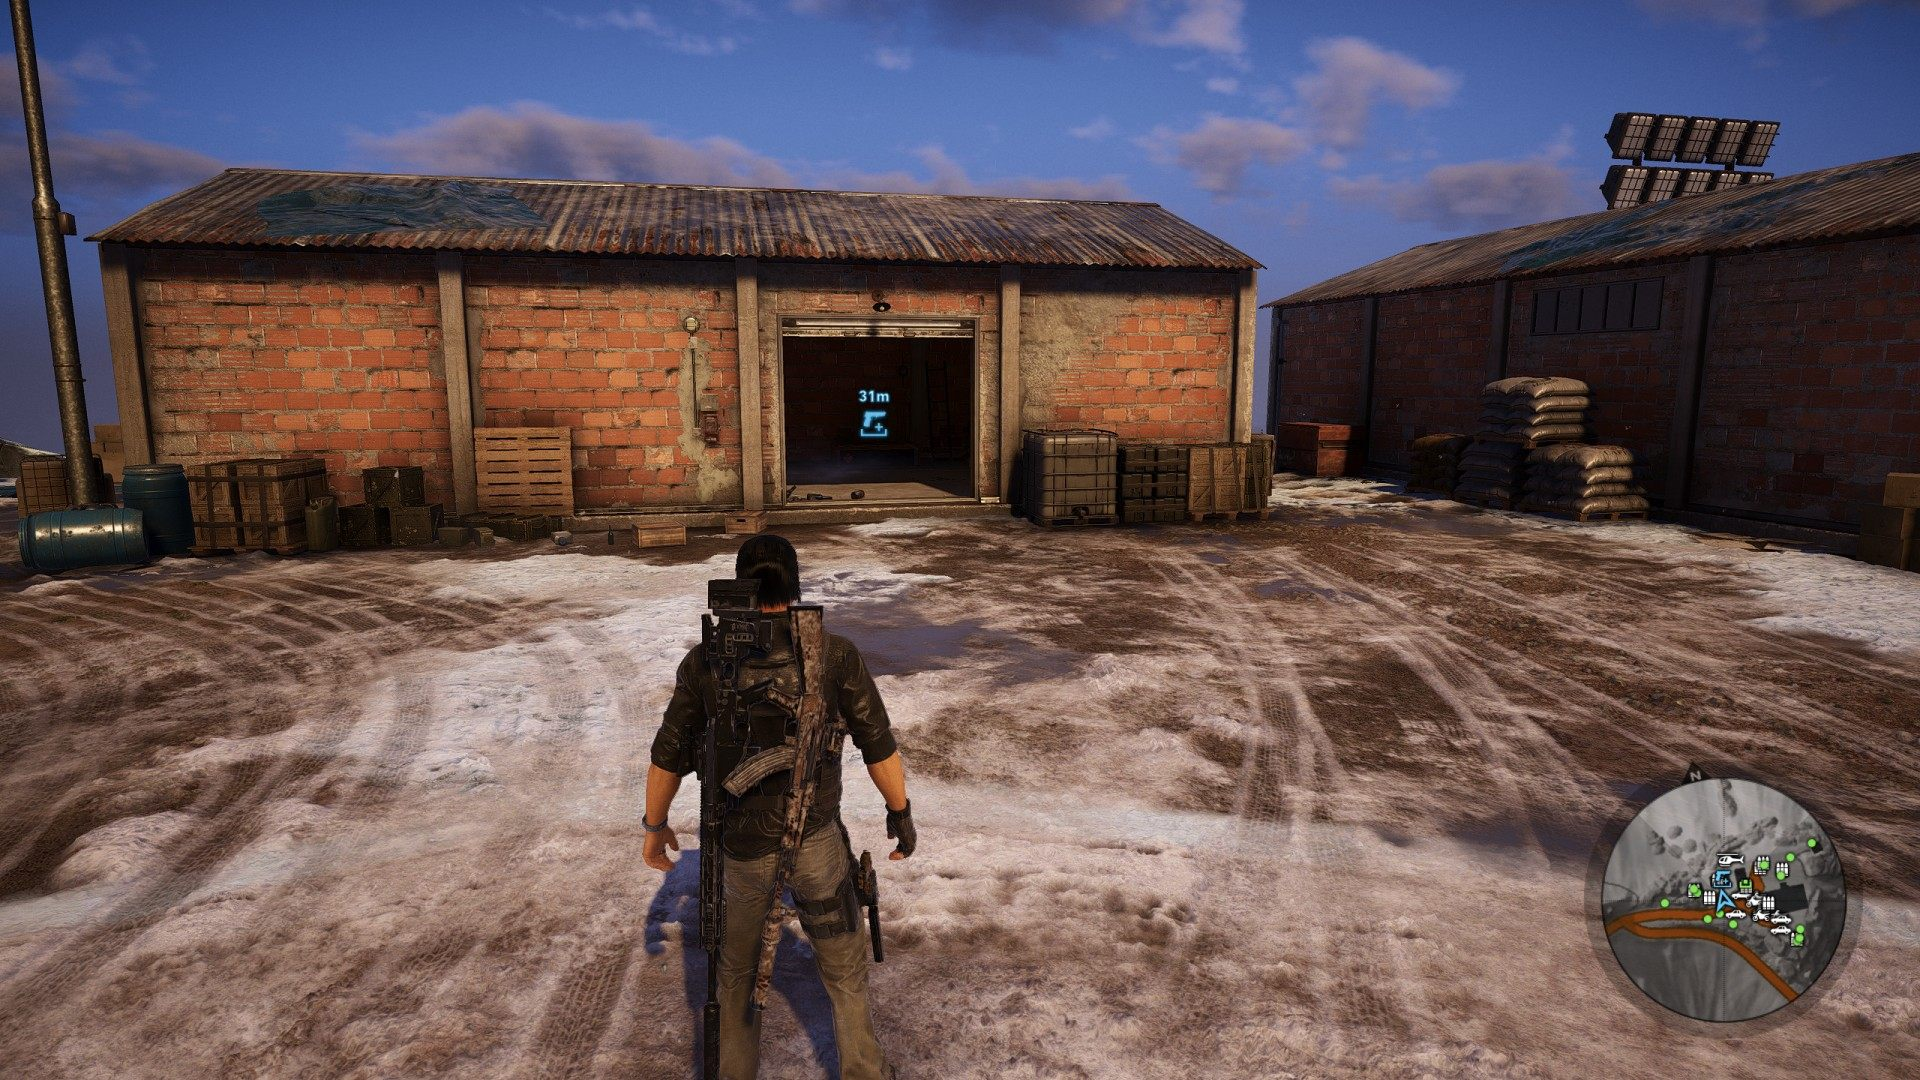 Weapon Cases, Narco Road, Ghost Recon: Wildlands Points of